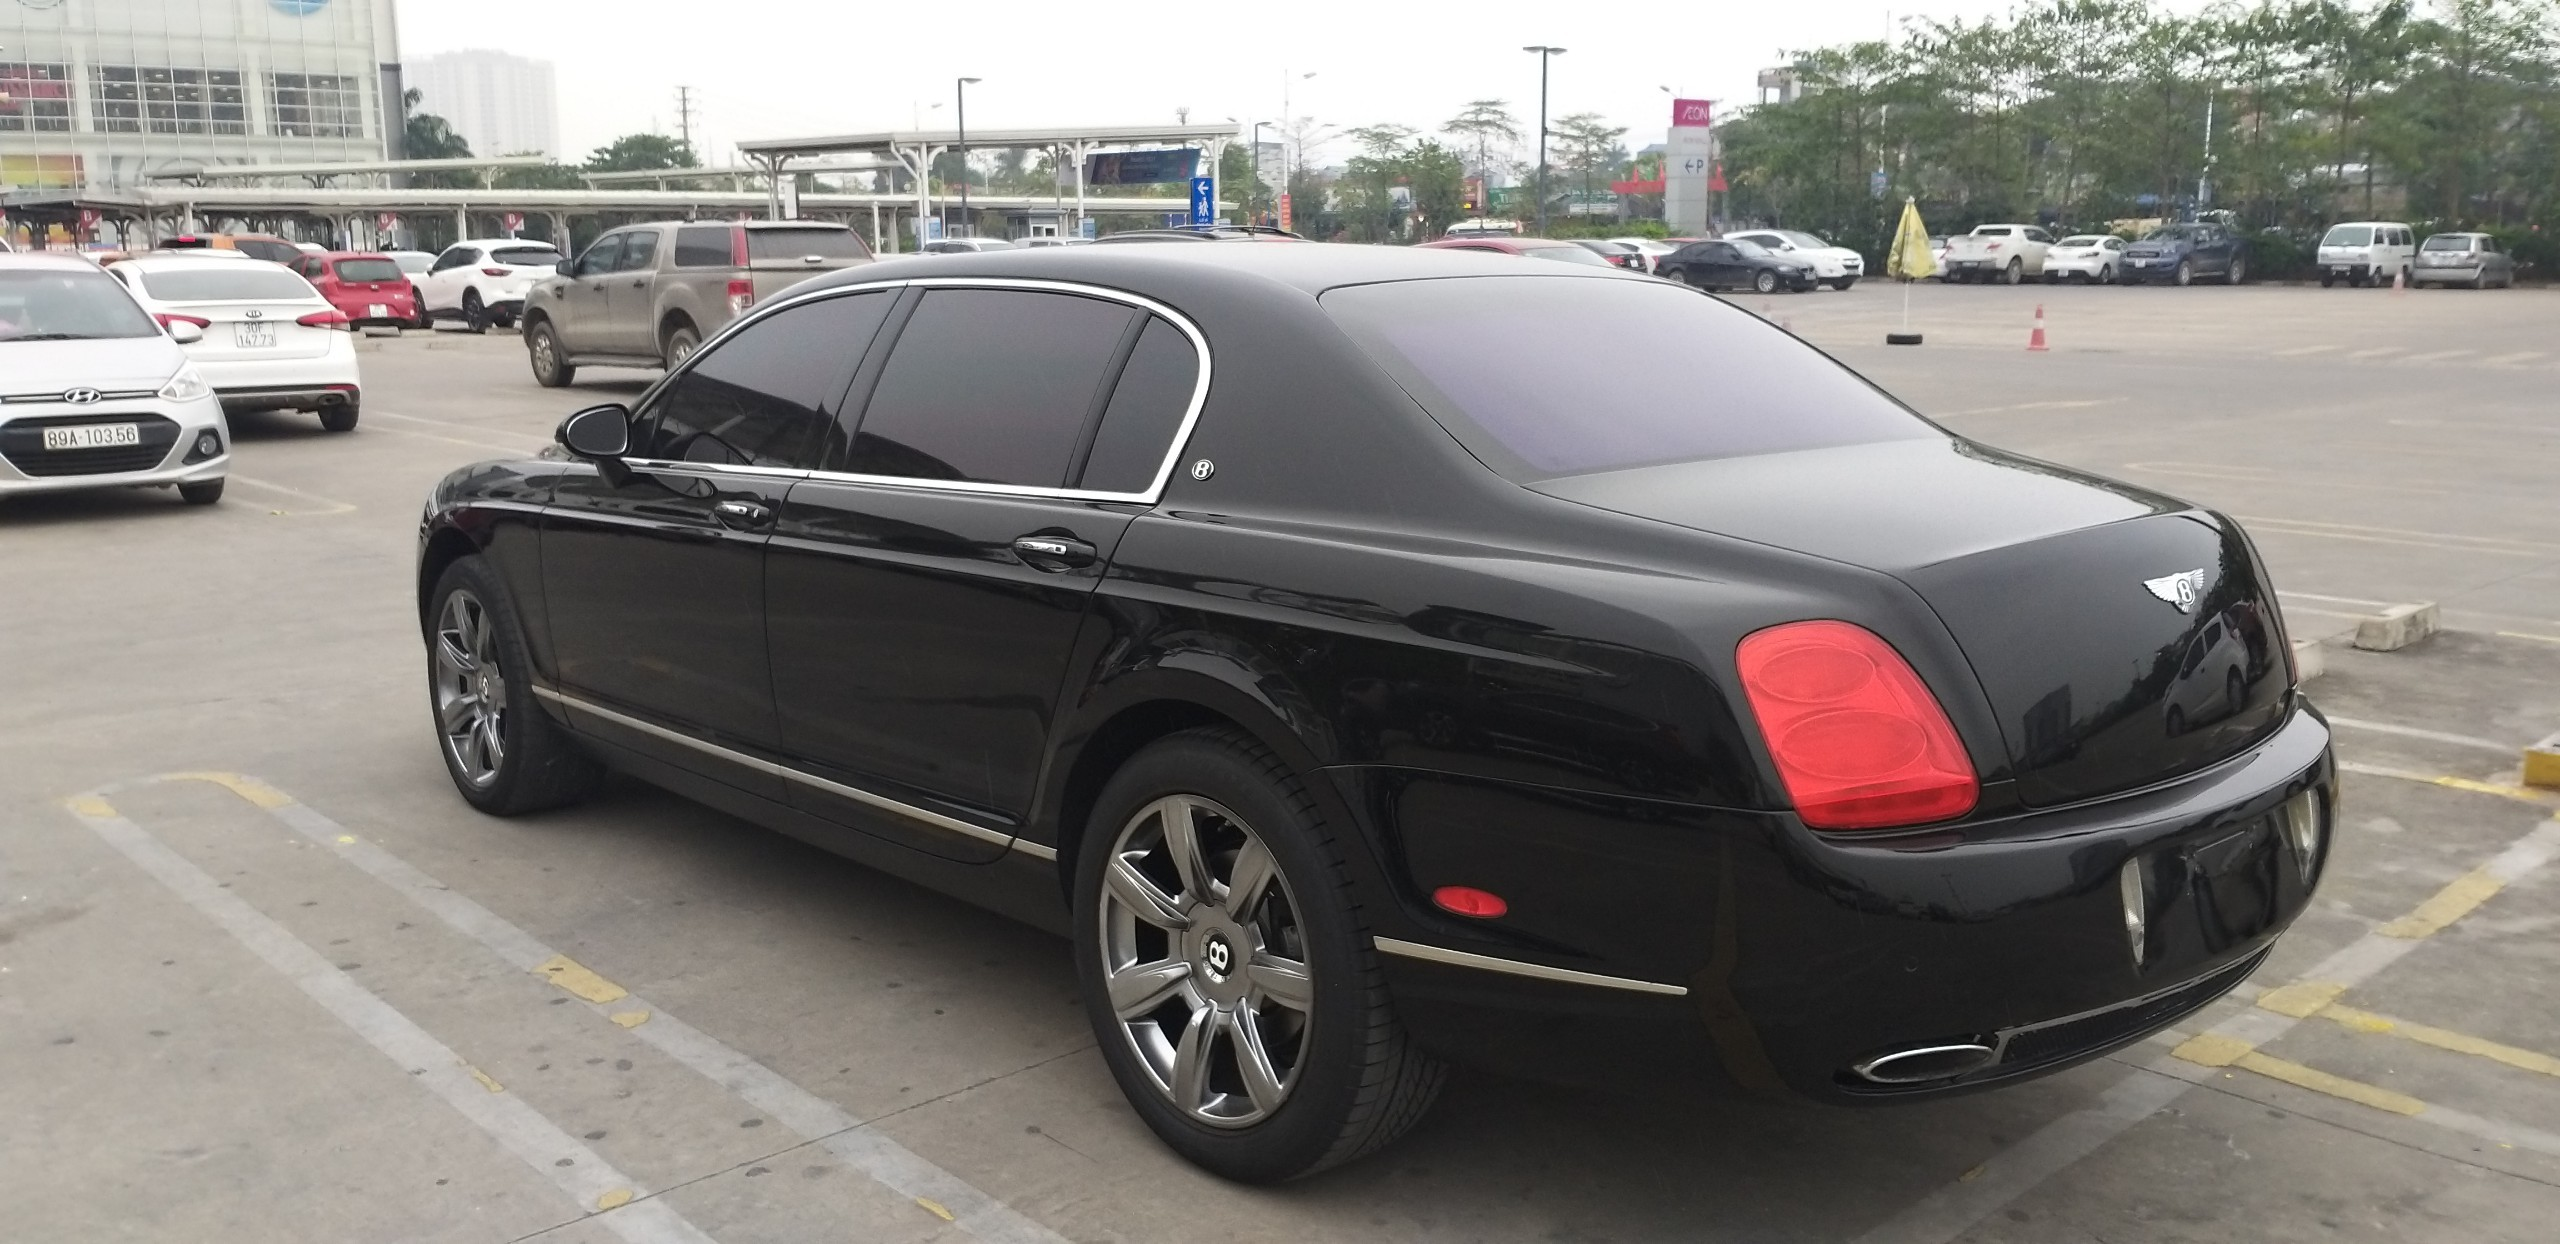 Bán Bentley Continental Flying Spur 2006 Ảnh số 42325213